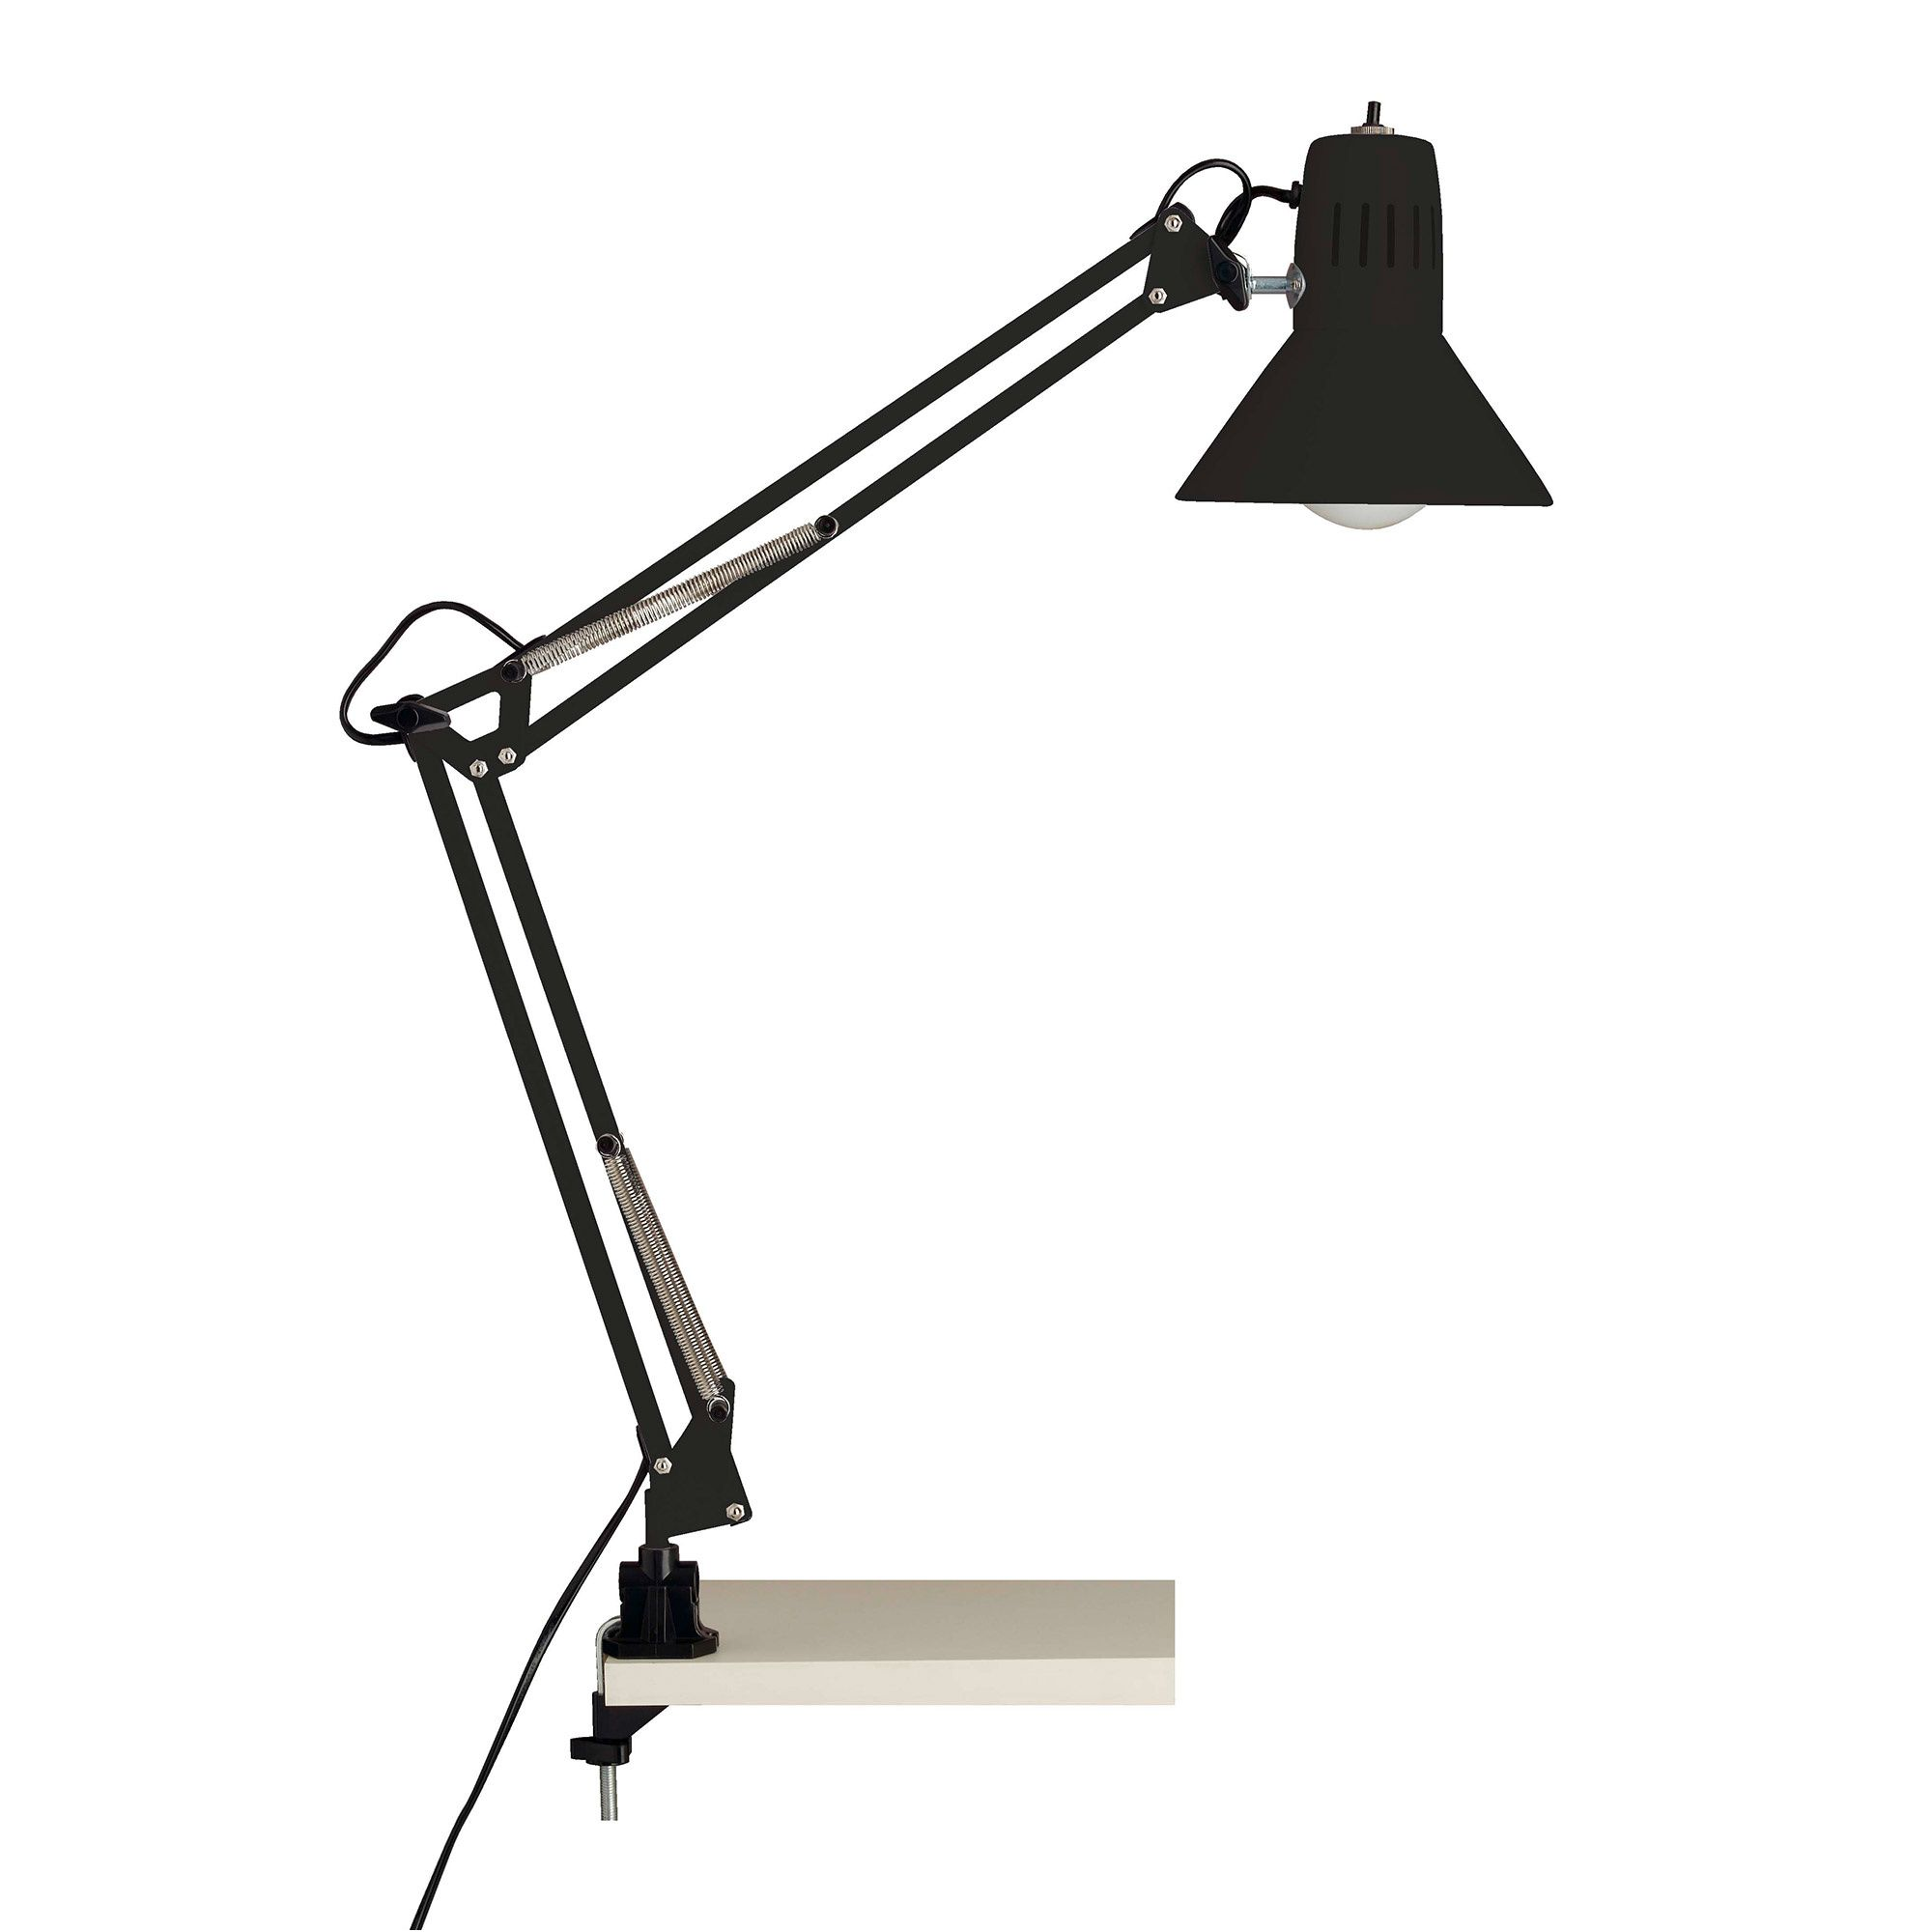 Lampe Bureau 15 Ideal Lampe Bureau Pictures Lampe Bureau Otto Led Blanc Faro Lampe De Bureau Ancienne En Laiton Qv09 Table Lamp Desk Lamp Decor